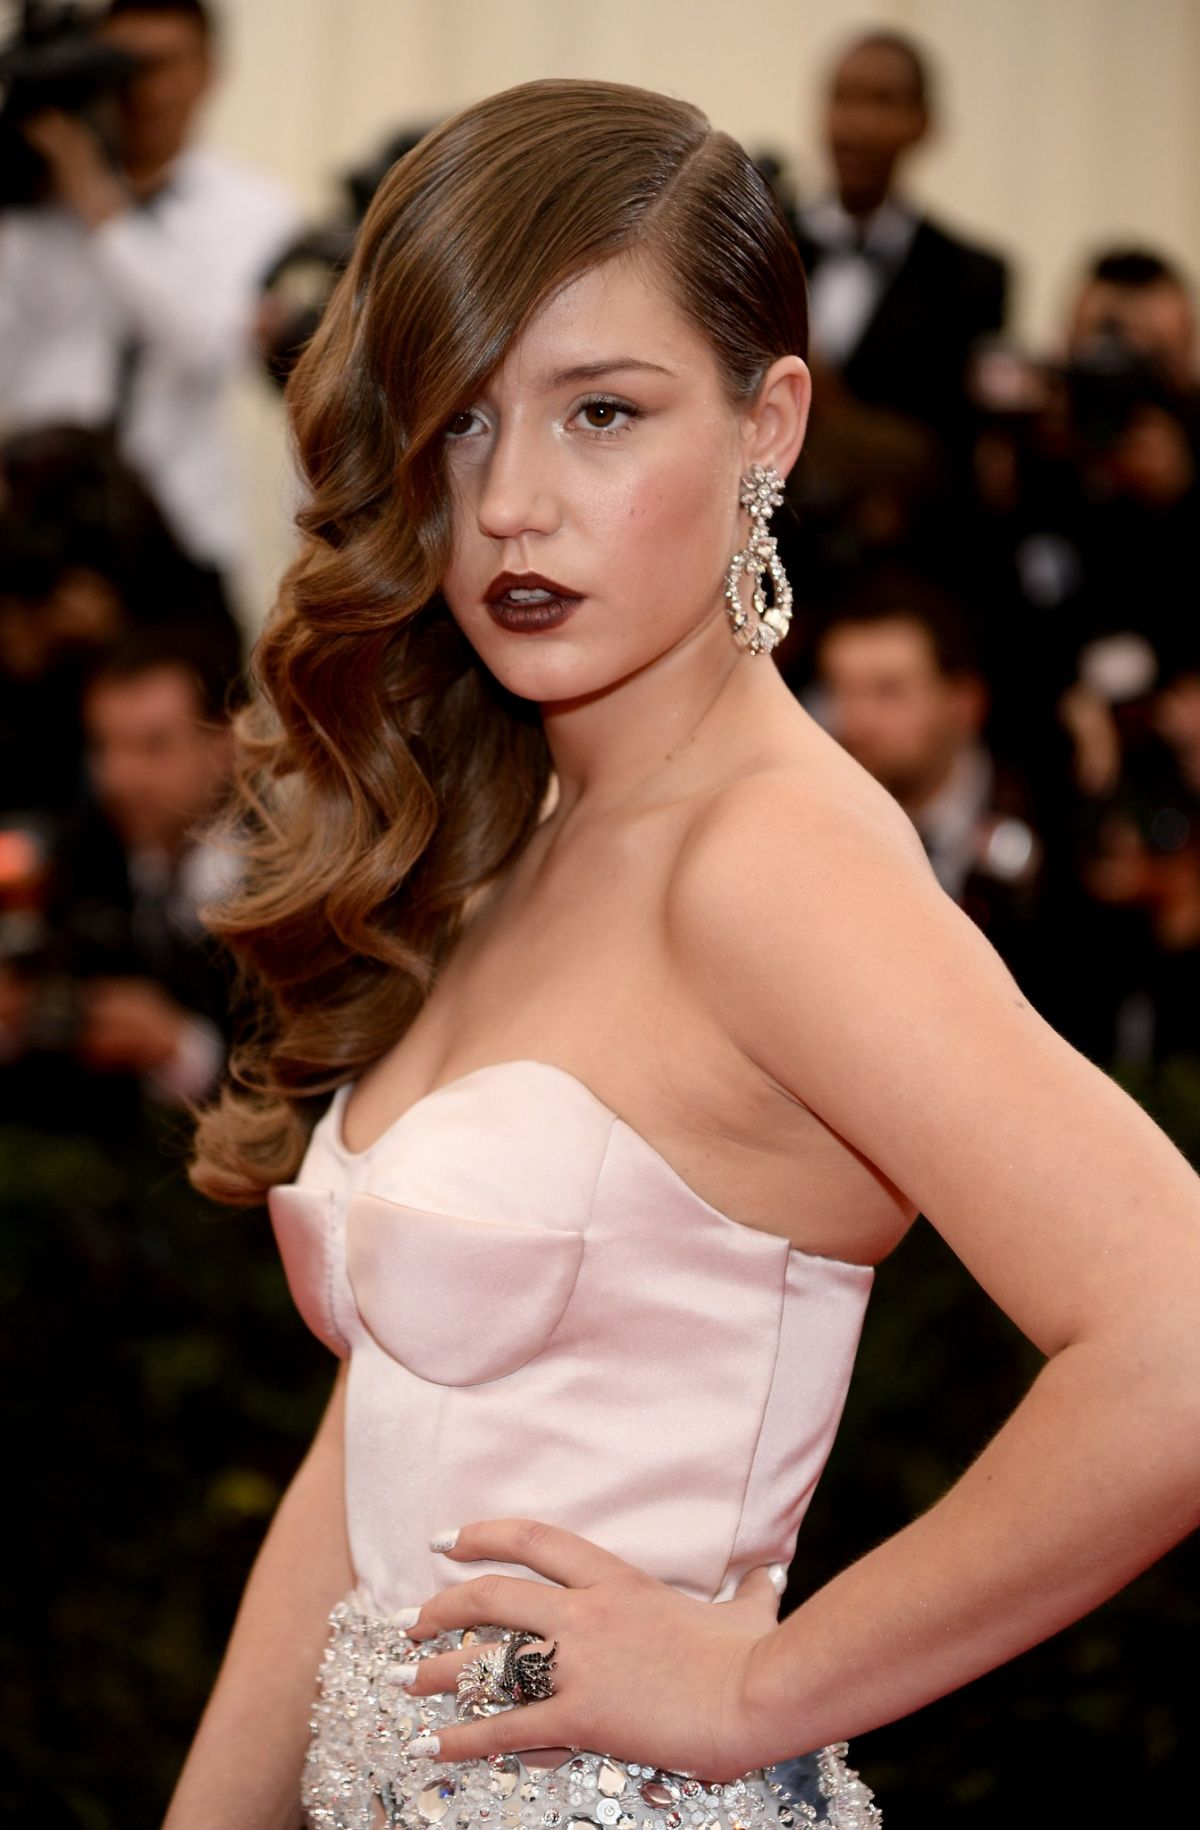 ADELE EXARCHOPOULOS at MET Gala 2014 in New York - HawtCelebs